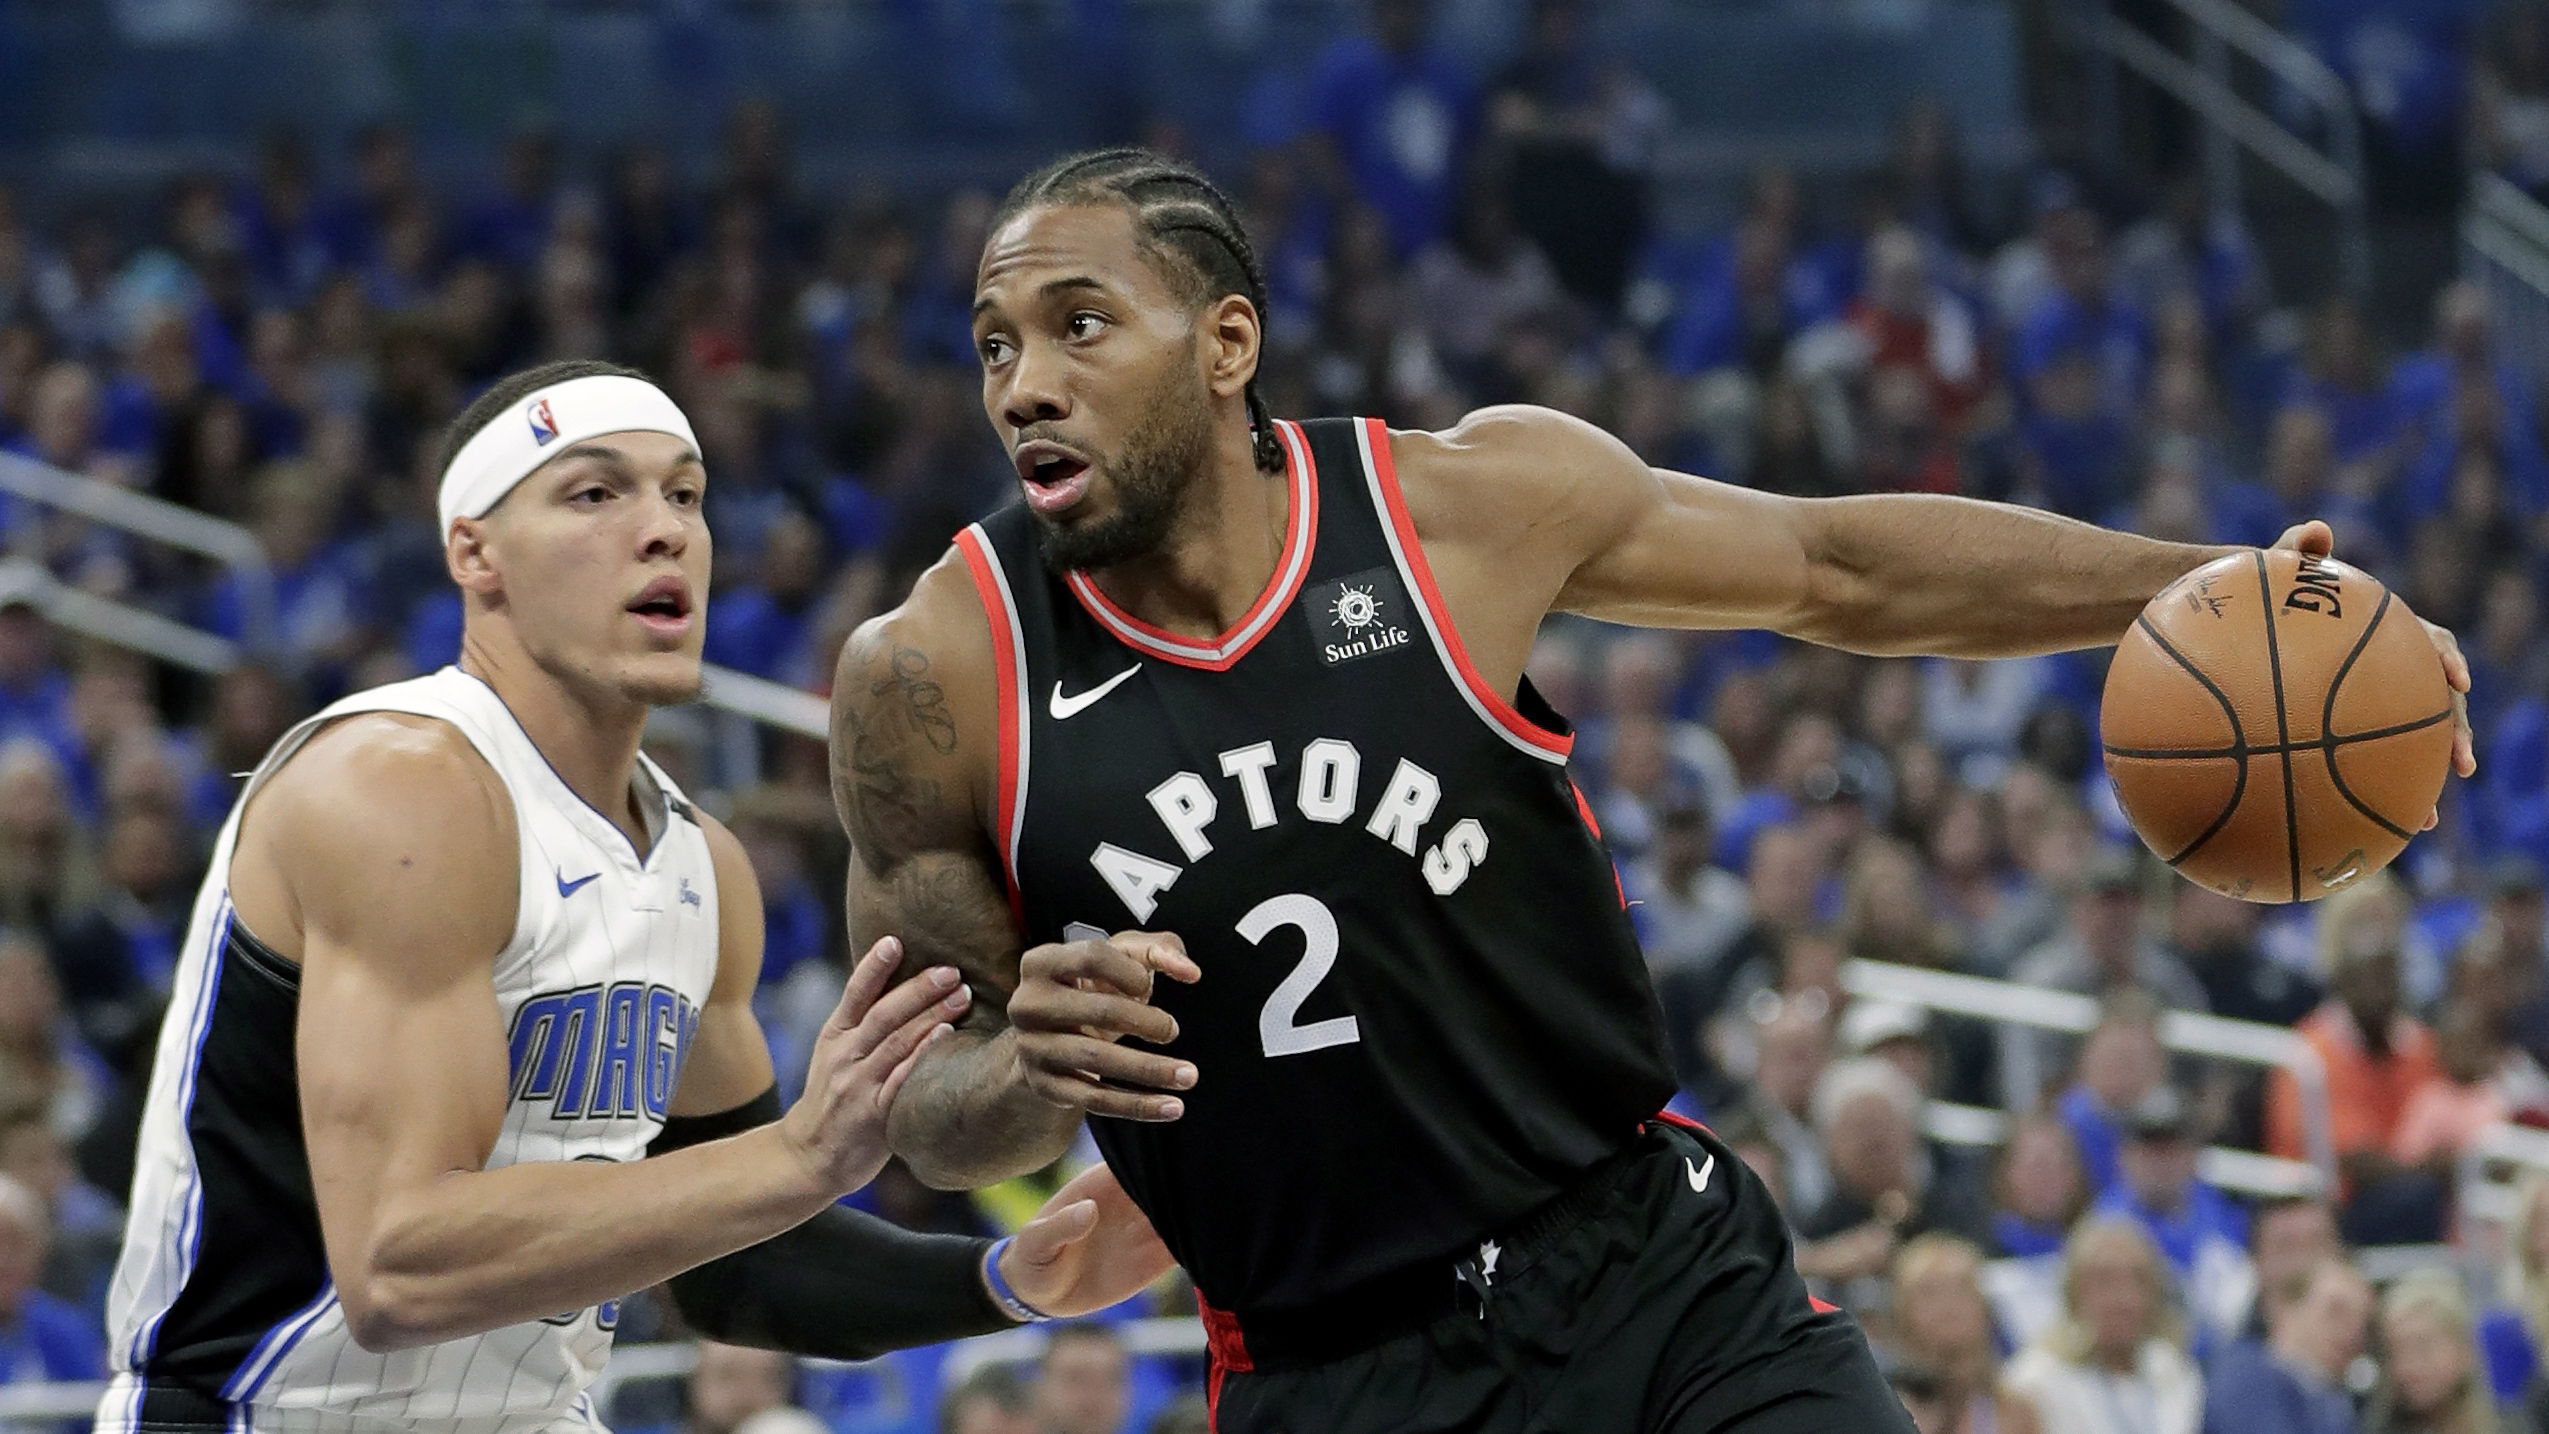 Toronto looks to secure series against Orlando in game 5